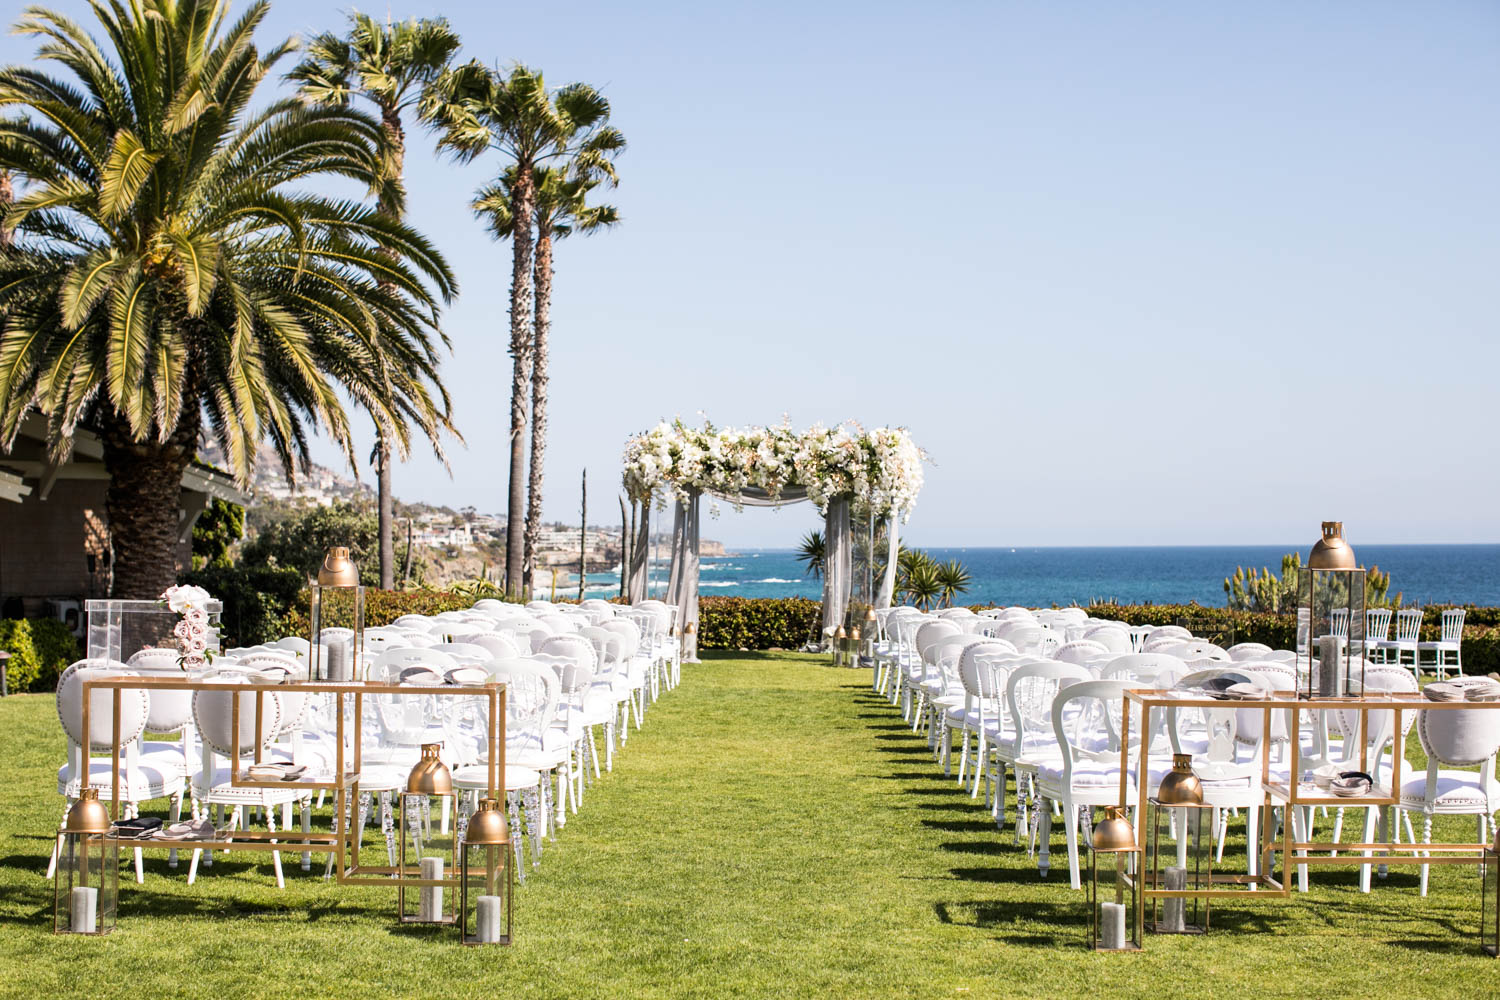 A Summer Oceanside Wedding at Montage Laguna in Laguna Beach, California